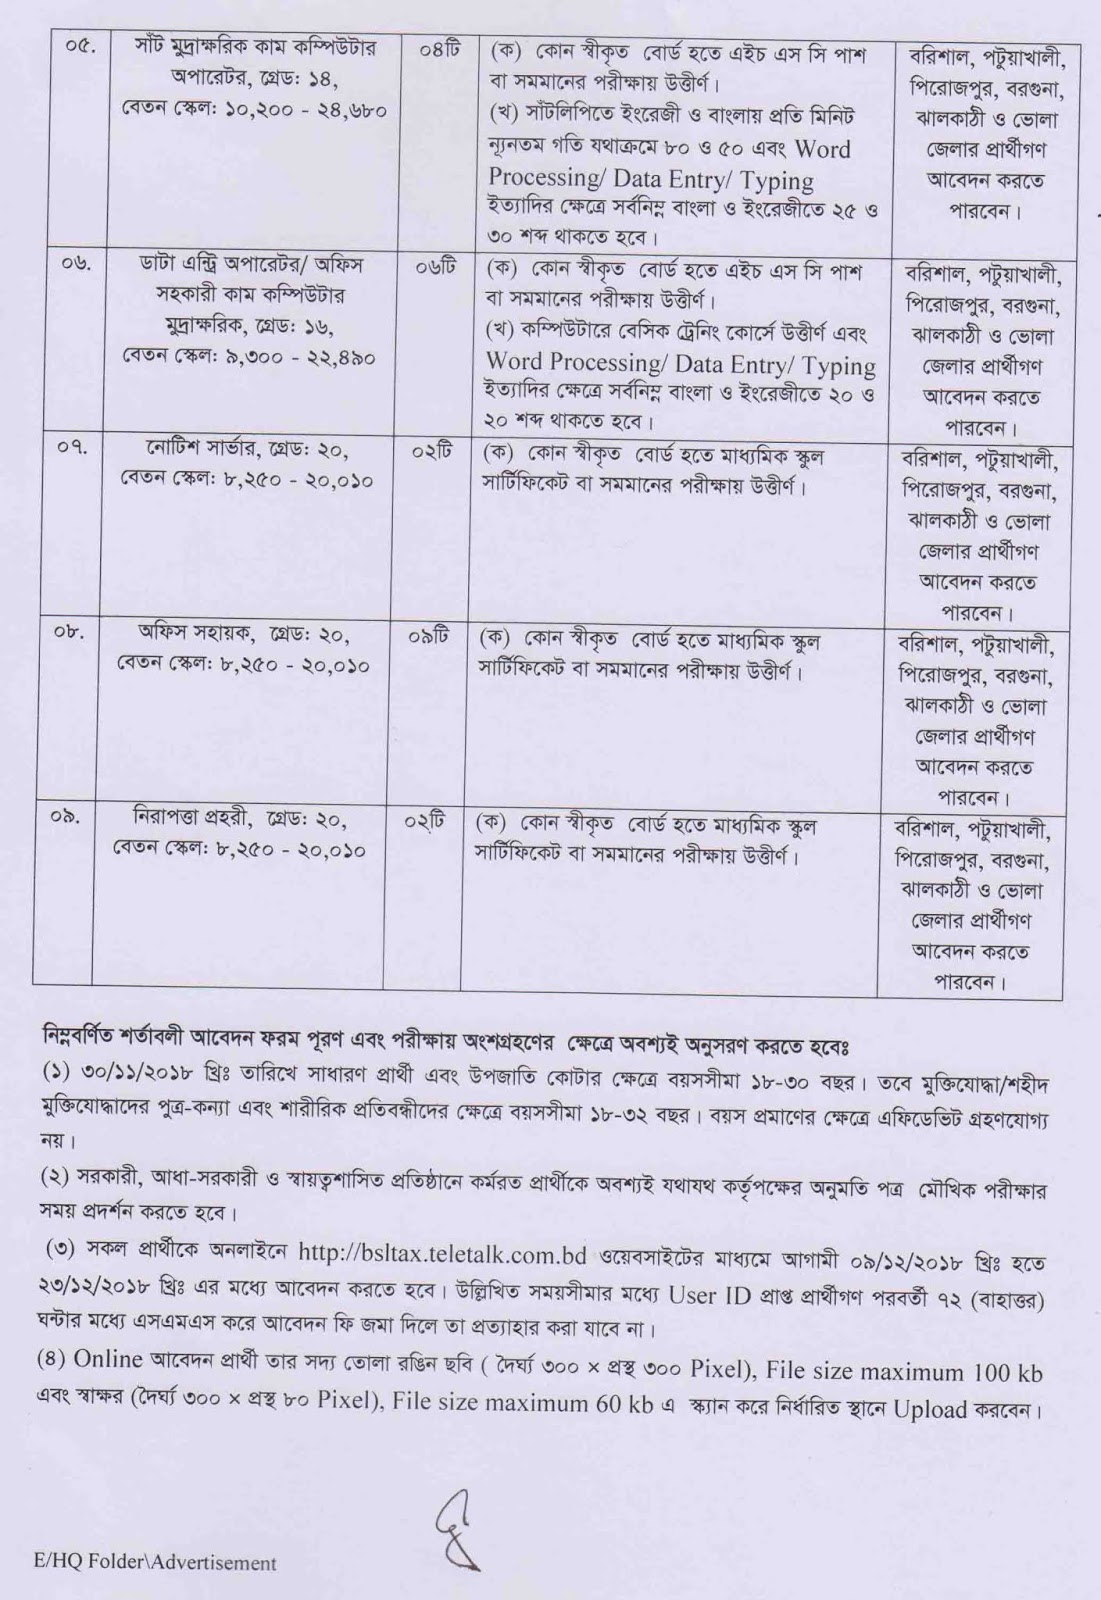 Tax Commissioner, Barisal Job Circular 2018